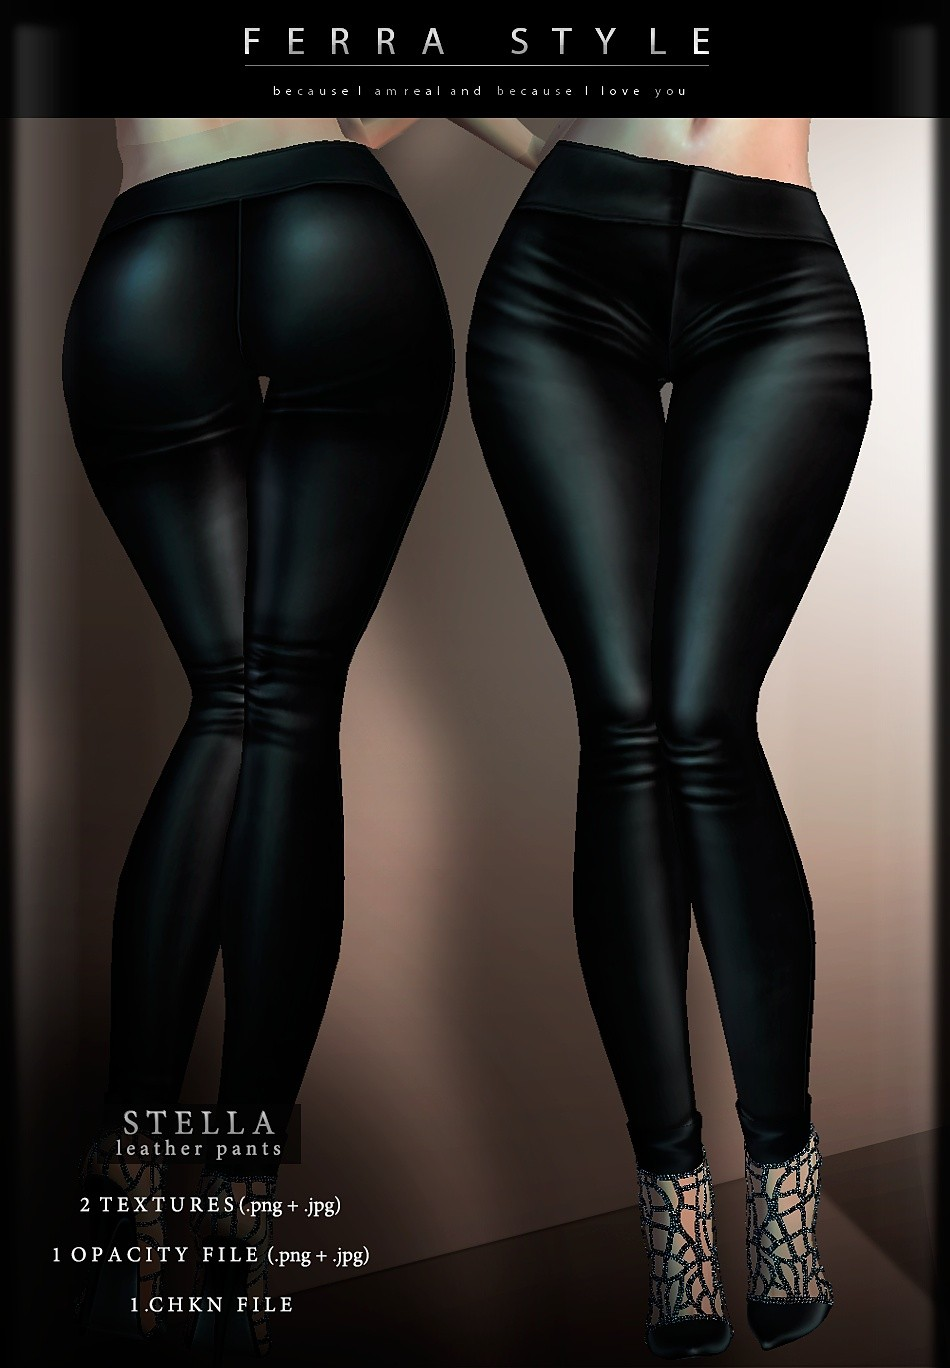 :: STELLA LEATHER PANTS ::